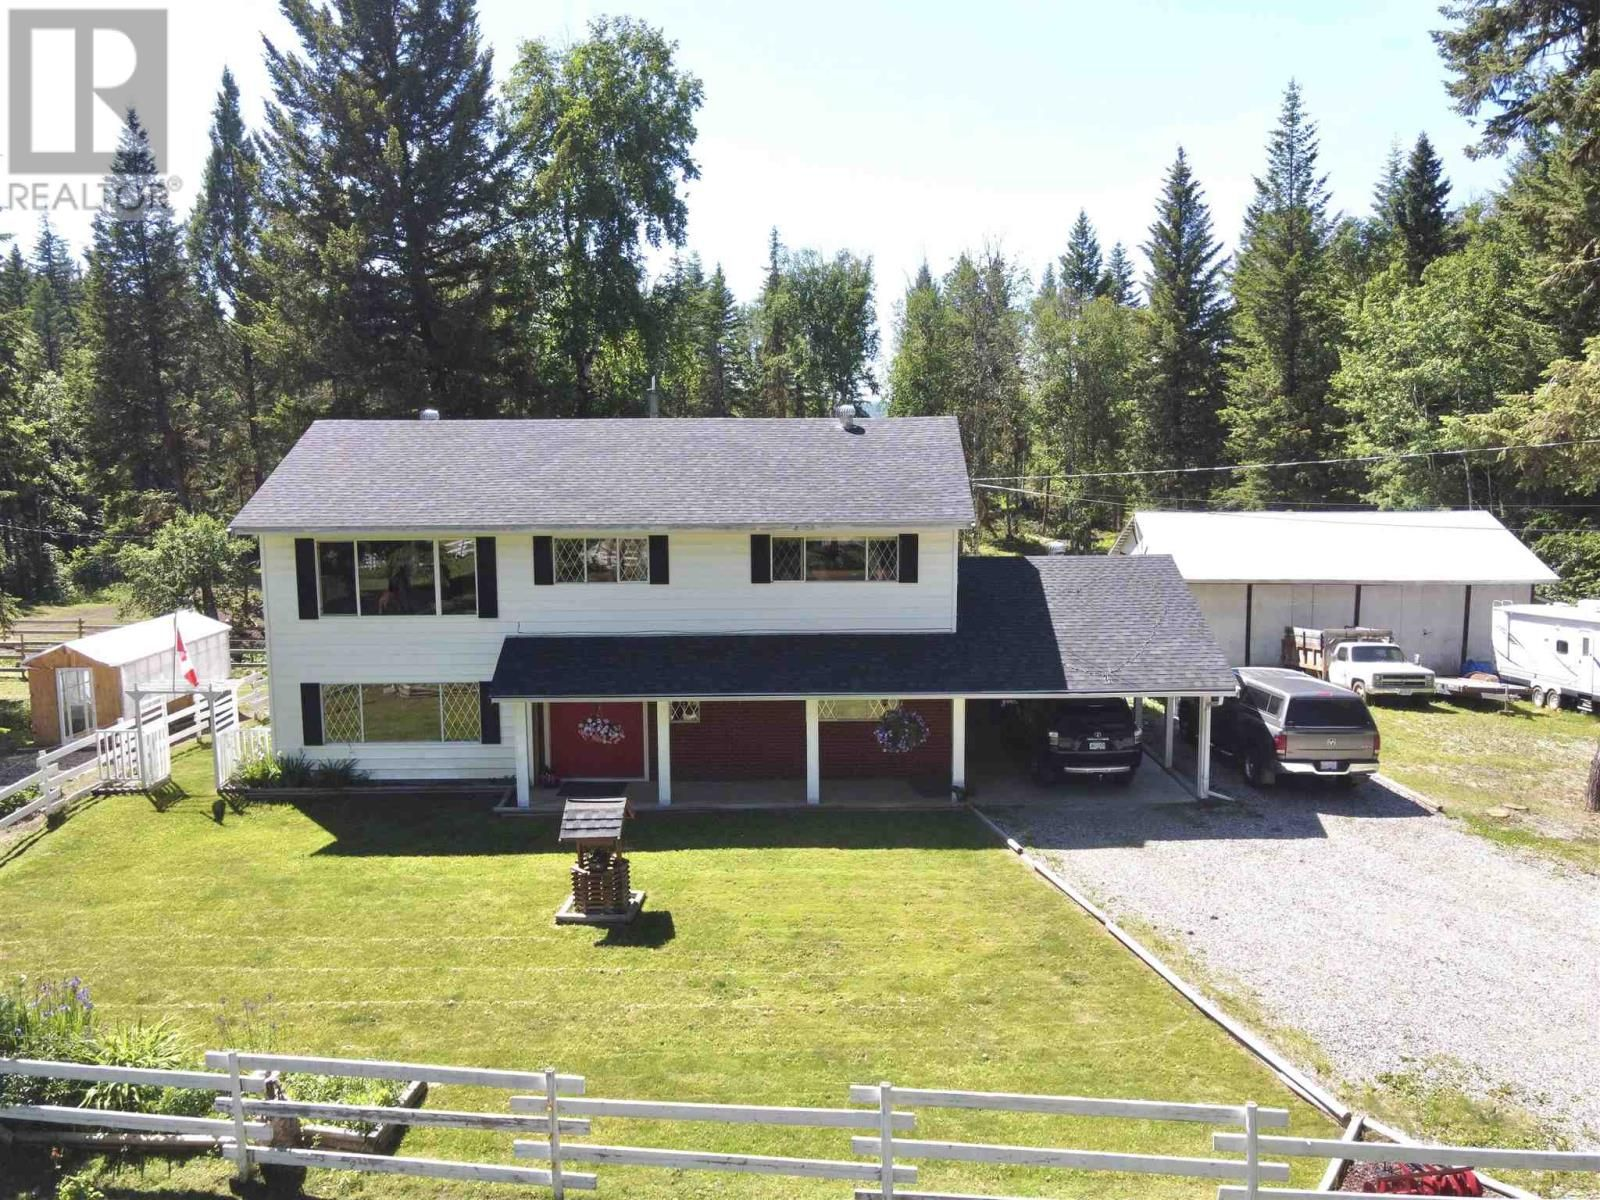 Main Photo: 3302 RED BLUFF ROAD in Quesnel: House for sale : MLS®# R2595855